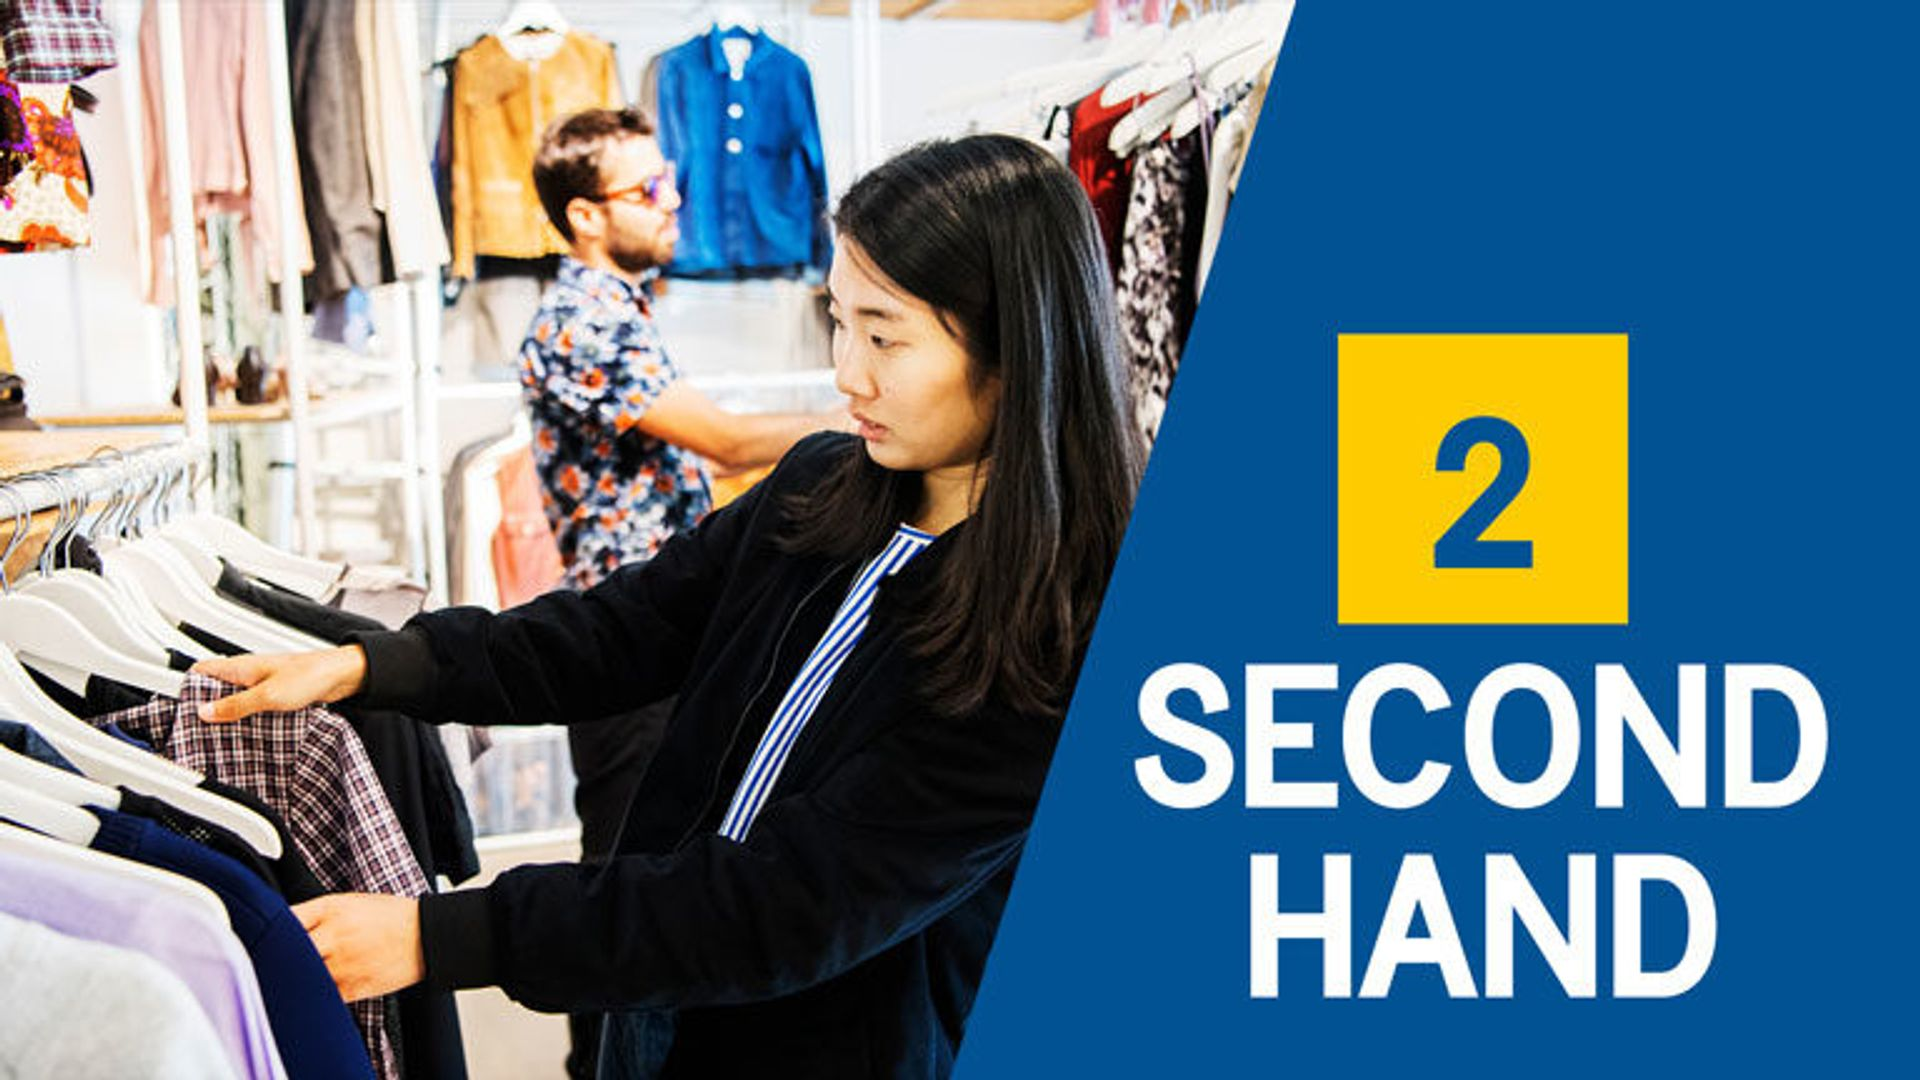 02 Second hand - Essentials if you are coming to Sweden